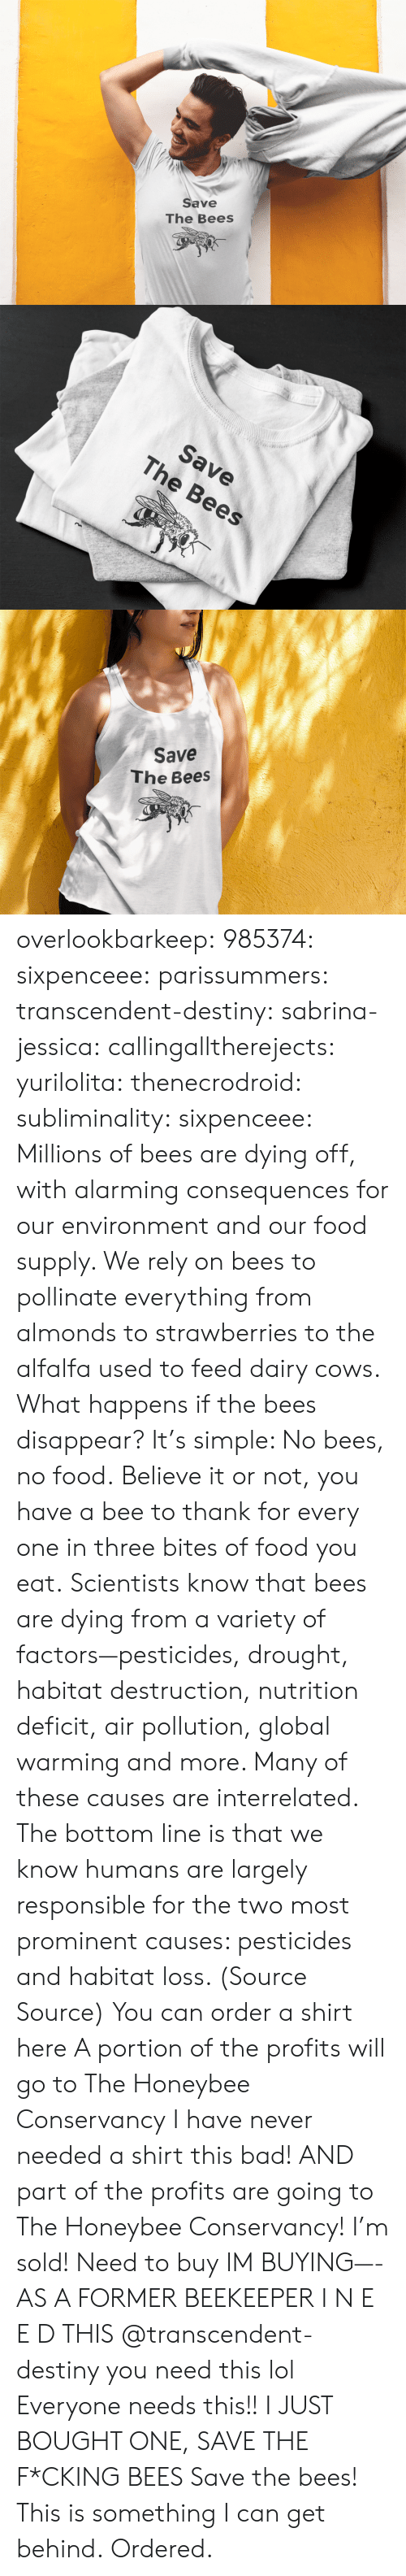 agriculture: Save  The Bees   Save  The Bees   Save  The Bees overlookbarkeep:  985374: sixpenceee:  parissummers:  transcendent-destiny:  sabrina-jessica:   callingalltherejects:  yurilolita:  thenecrodroid:  subliminality:   sixpenceee:   Millions of bees are dying off, with alarming consequences for our environment and our food supply. We rely on bees to pollinate everything from almonds to strawberries to the alfalfa used to feed dairy cows. What happens if the bees disappear? It's simple: No bees, no food. Believe it or not, you have a bee to thank for every one in three bites of food you eat. Scientists know that bees are dying from a variety of factors—pesticides, drought, habitat destruction, nutrition deficit, air pollution, global warming and more. Many of these causes are interrelated. The bottom line is that we know humans are largely responsible for the two most prominent causes: pesticides and habitat loss. (Source  Source) You can order a shirt here A portion of the profits will go to The Honeybee Conservancy   I have never needed a shirt this bad! AND part of the profits are going to The Honeybee Conservancy! I'm sold!   Need to buy   IM BUYING—-   AS A FORMER BEEKEEPER I N E E D THIS   @transcendent-destiny you need this lol  Everyone needs this!!   I JUST BOUGHT ONE, SAVE THE F*CKING BEES  Save the bees!   This is something I can get behind.   Ordered.